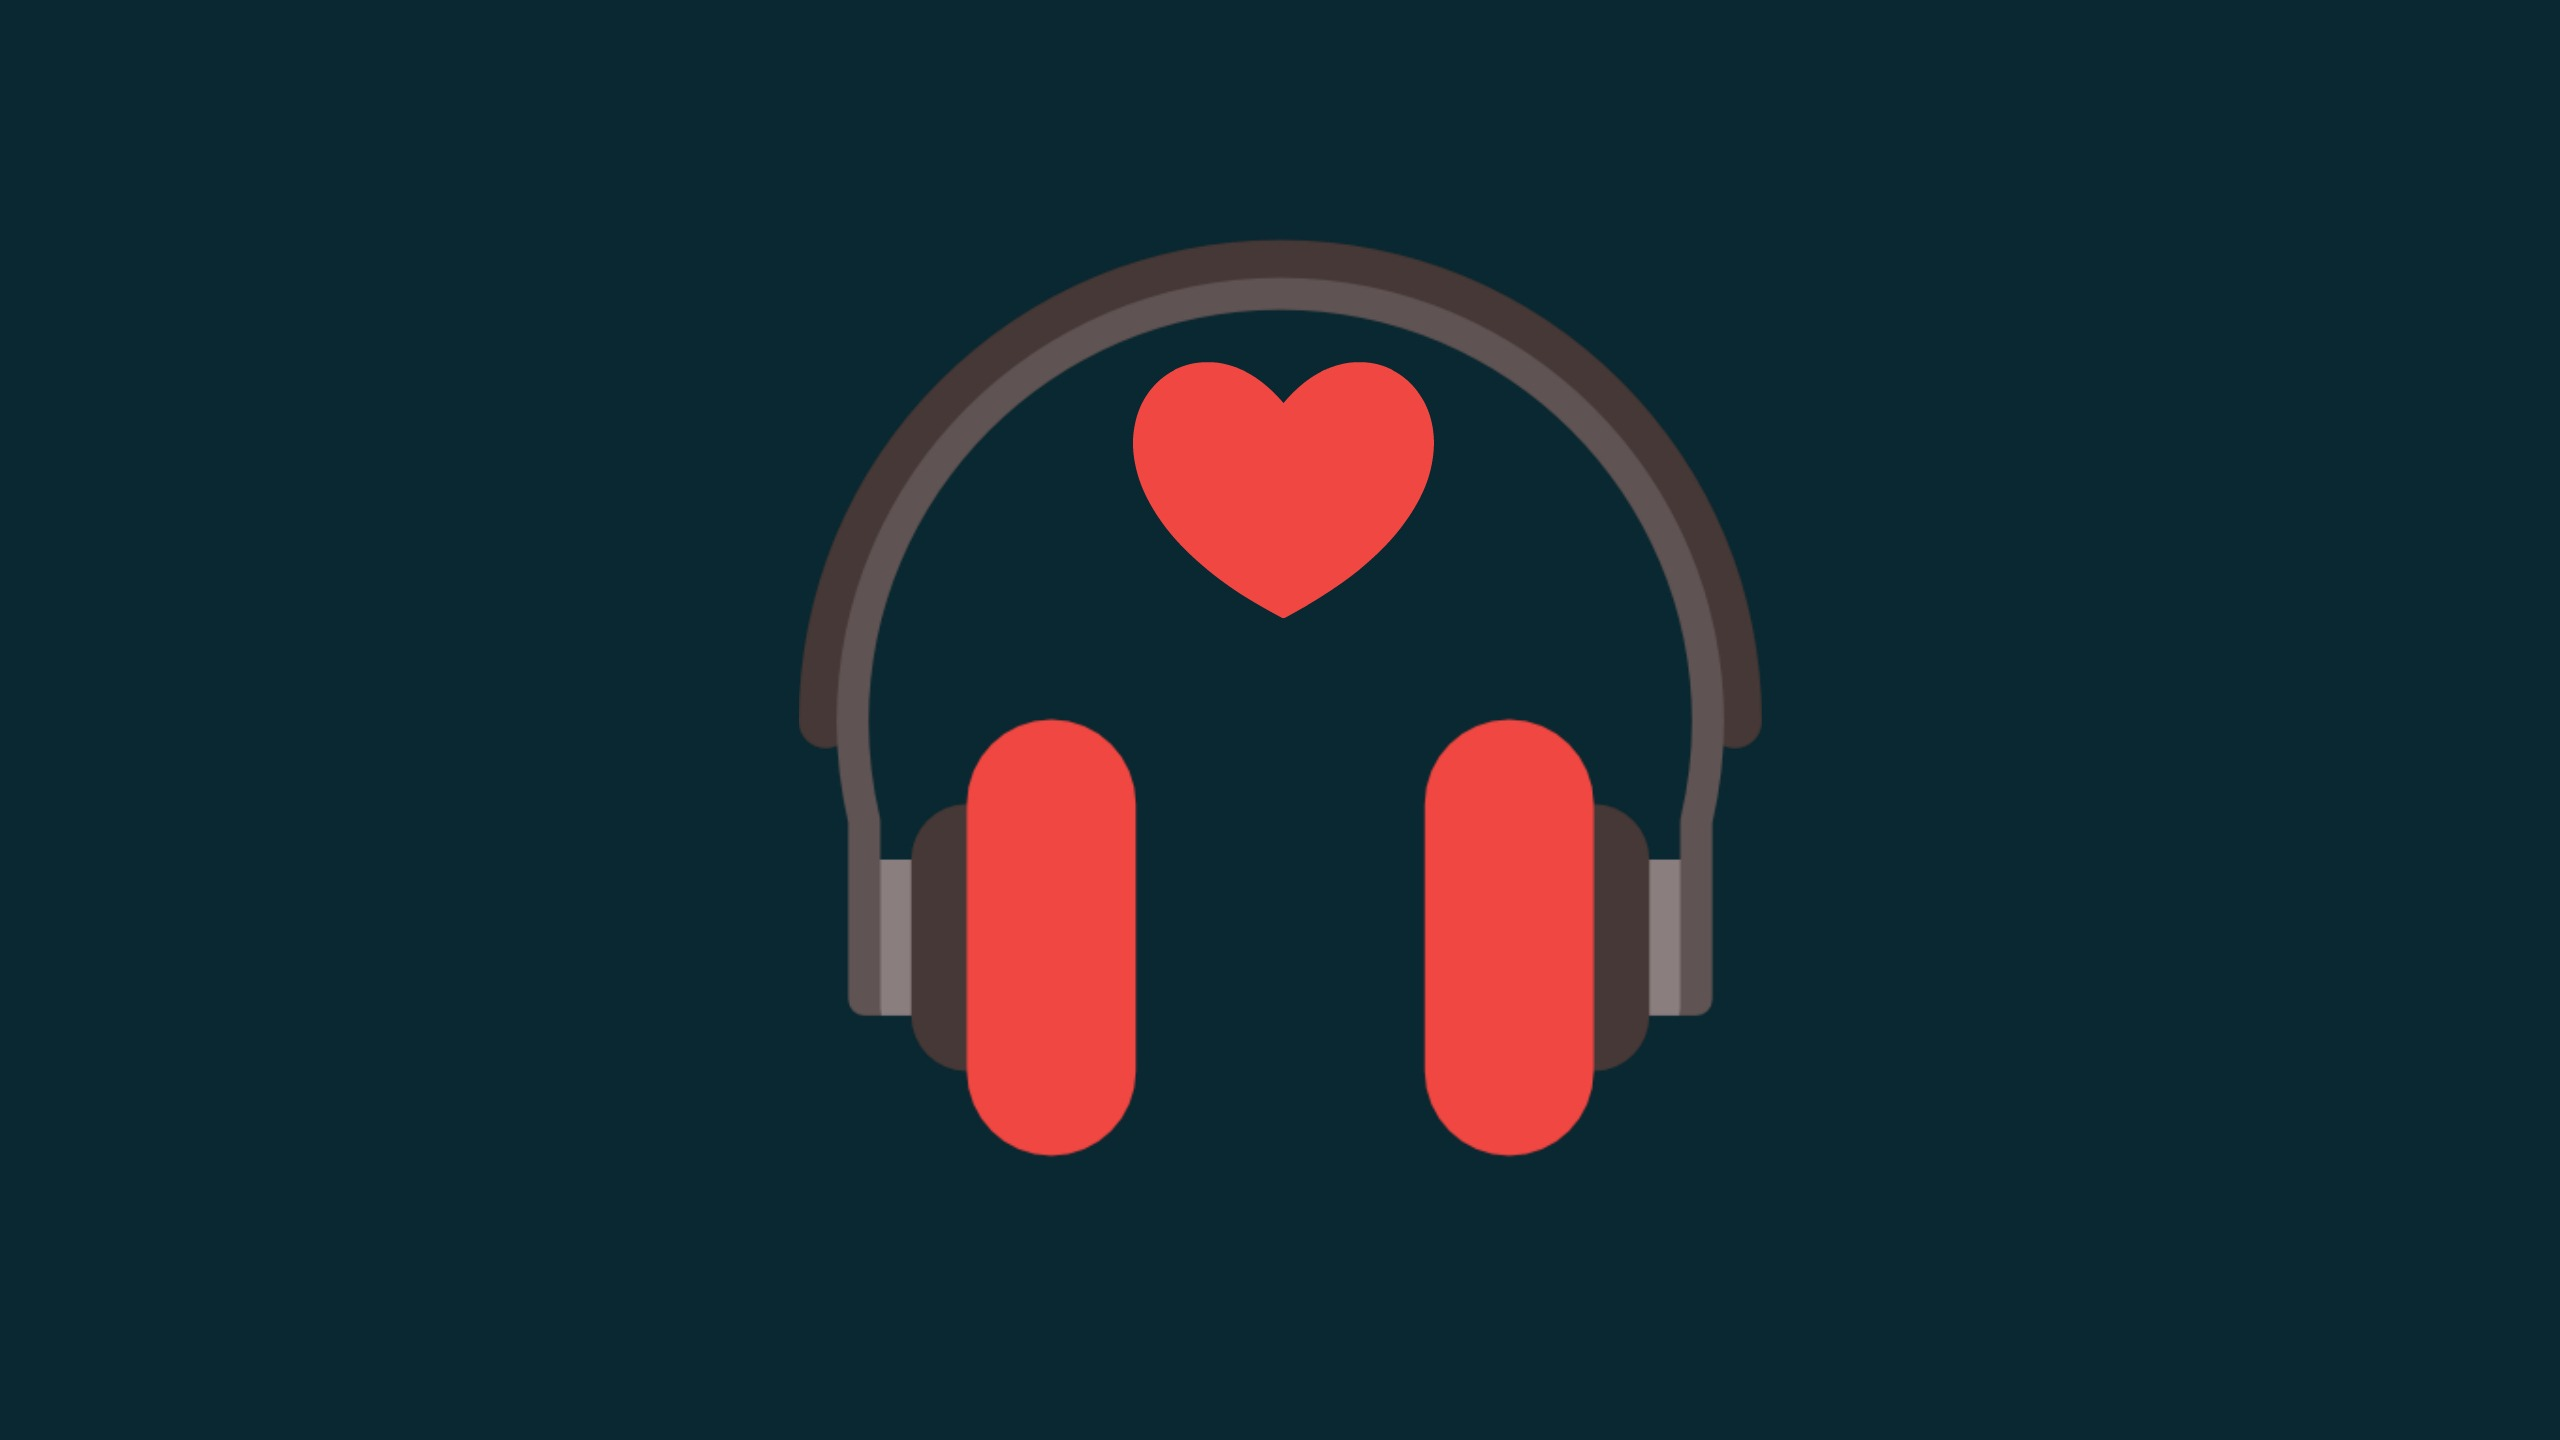 A pair of headphones with red earphones sit on a dark grey background with a heart floating above to show I love to use podcasts to help IELTS students